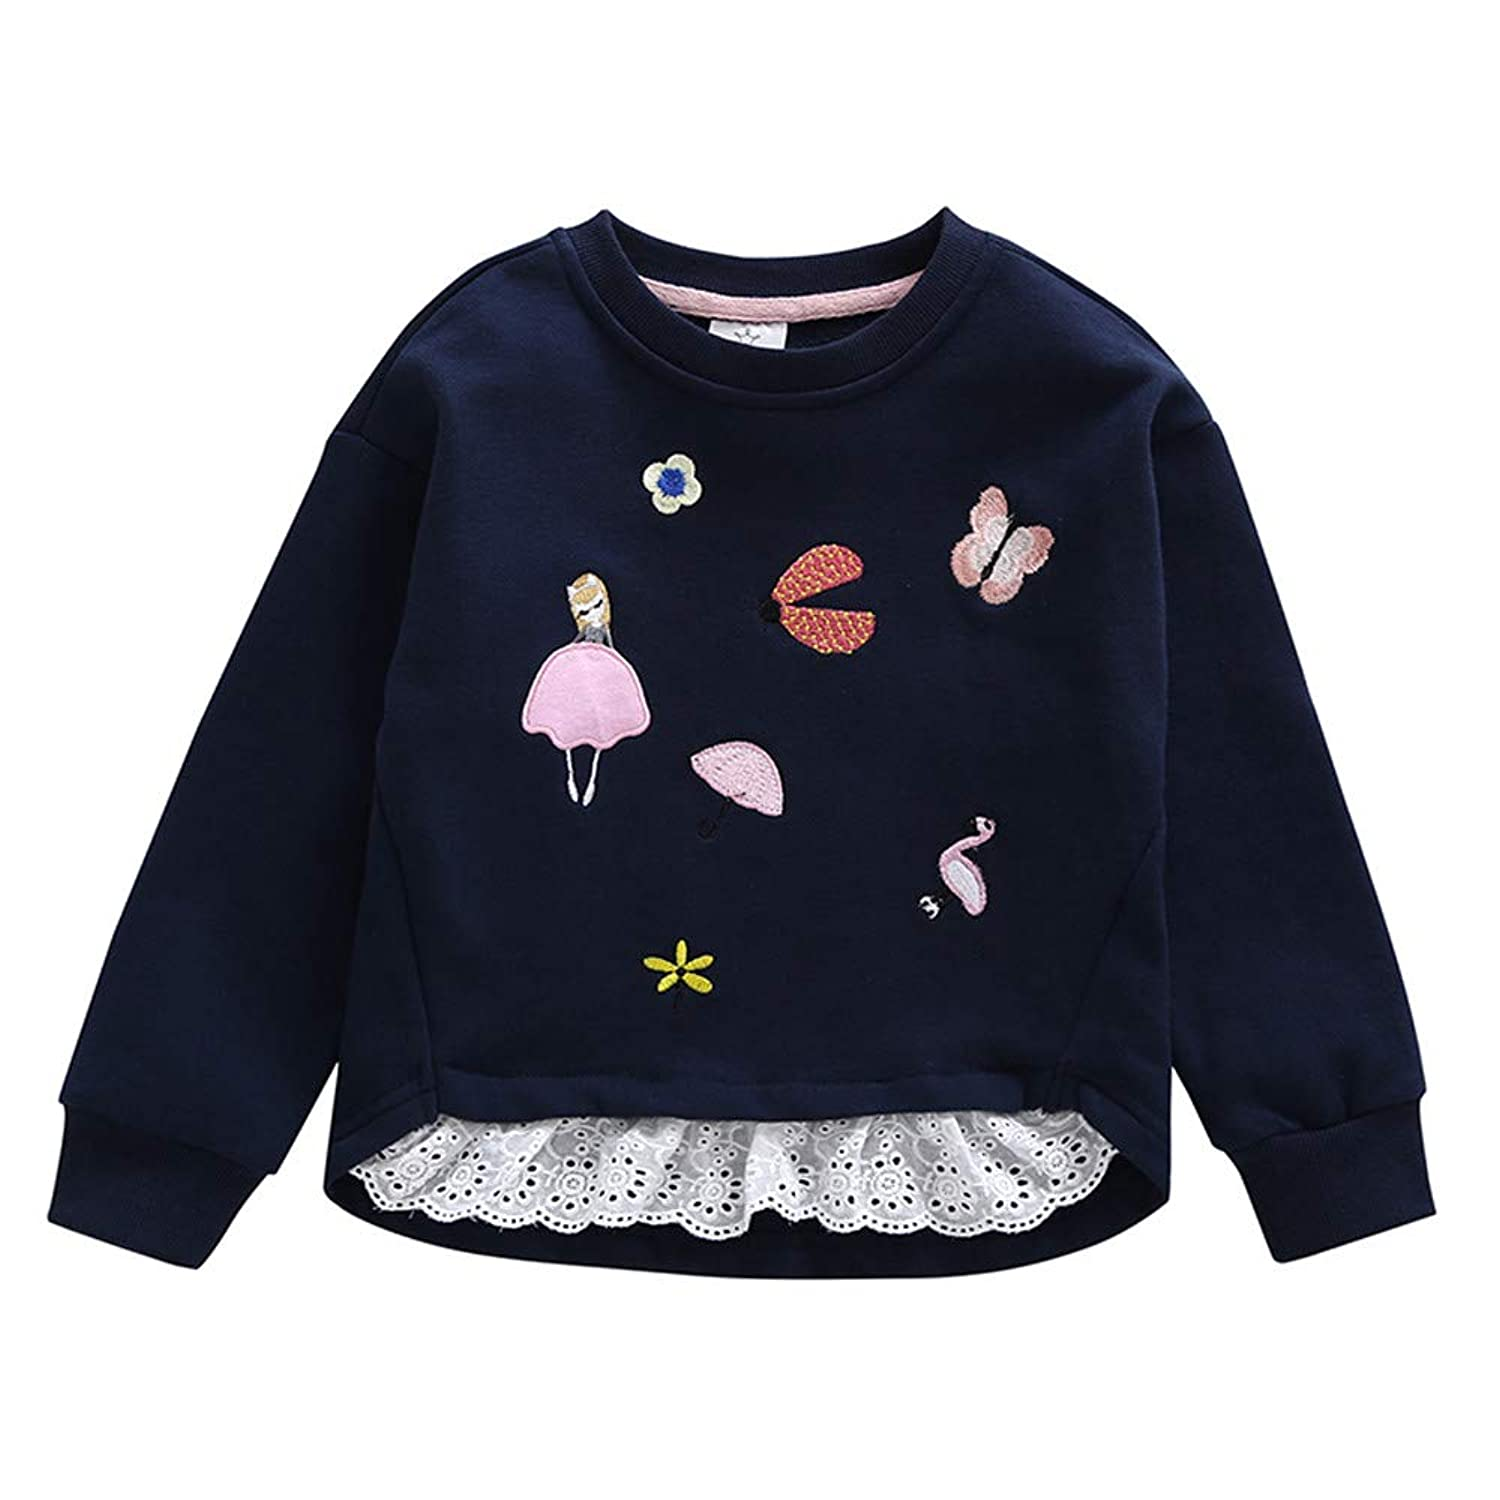 HYIRI Toddler Infant Baby Girls Embroidery Splicing Sweatshirt Tops Pullover Blouse